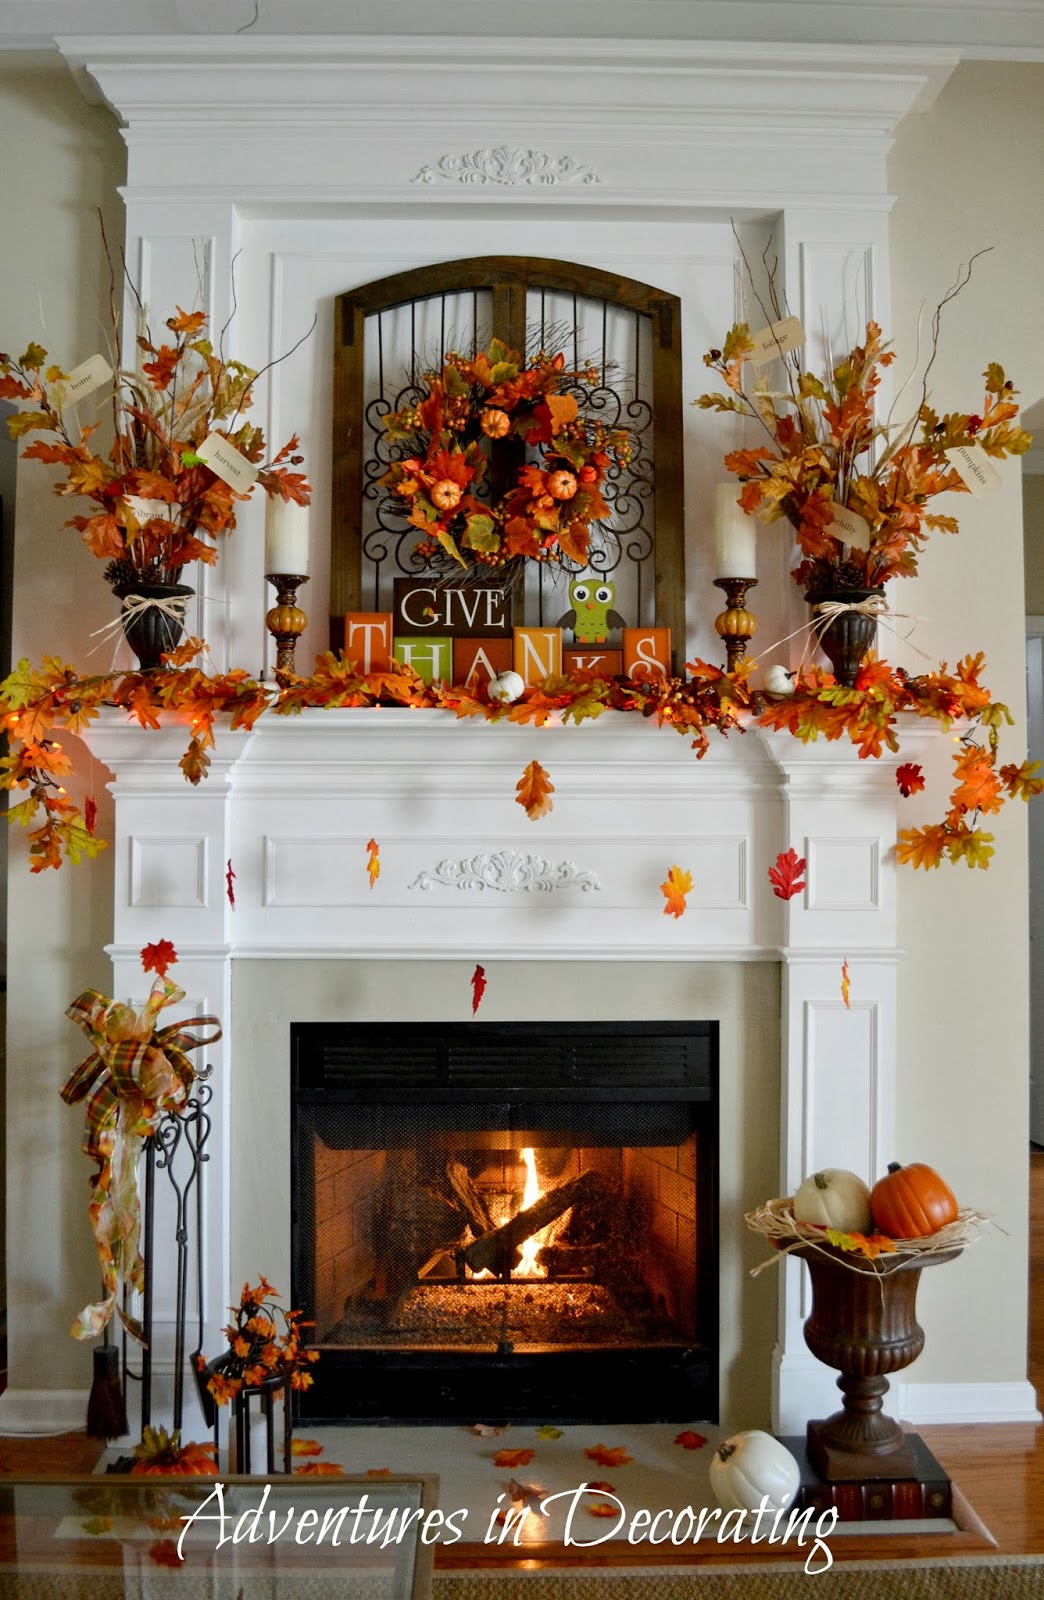 Mantel Decorating Ideas For The Holidays: Adventures In Decorating: Our Fall Mantel